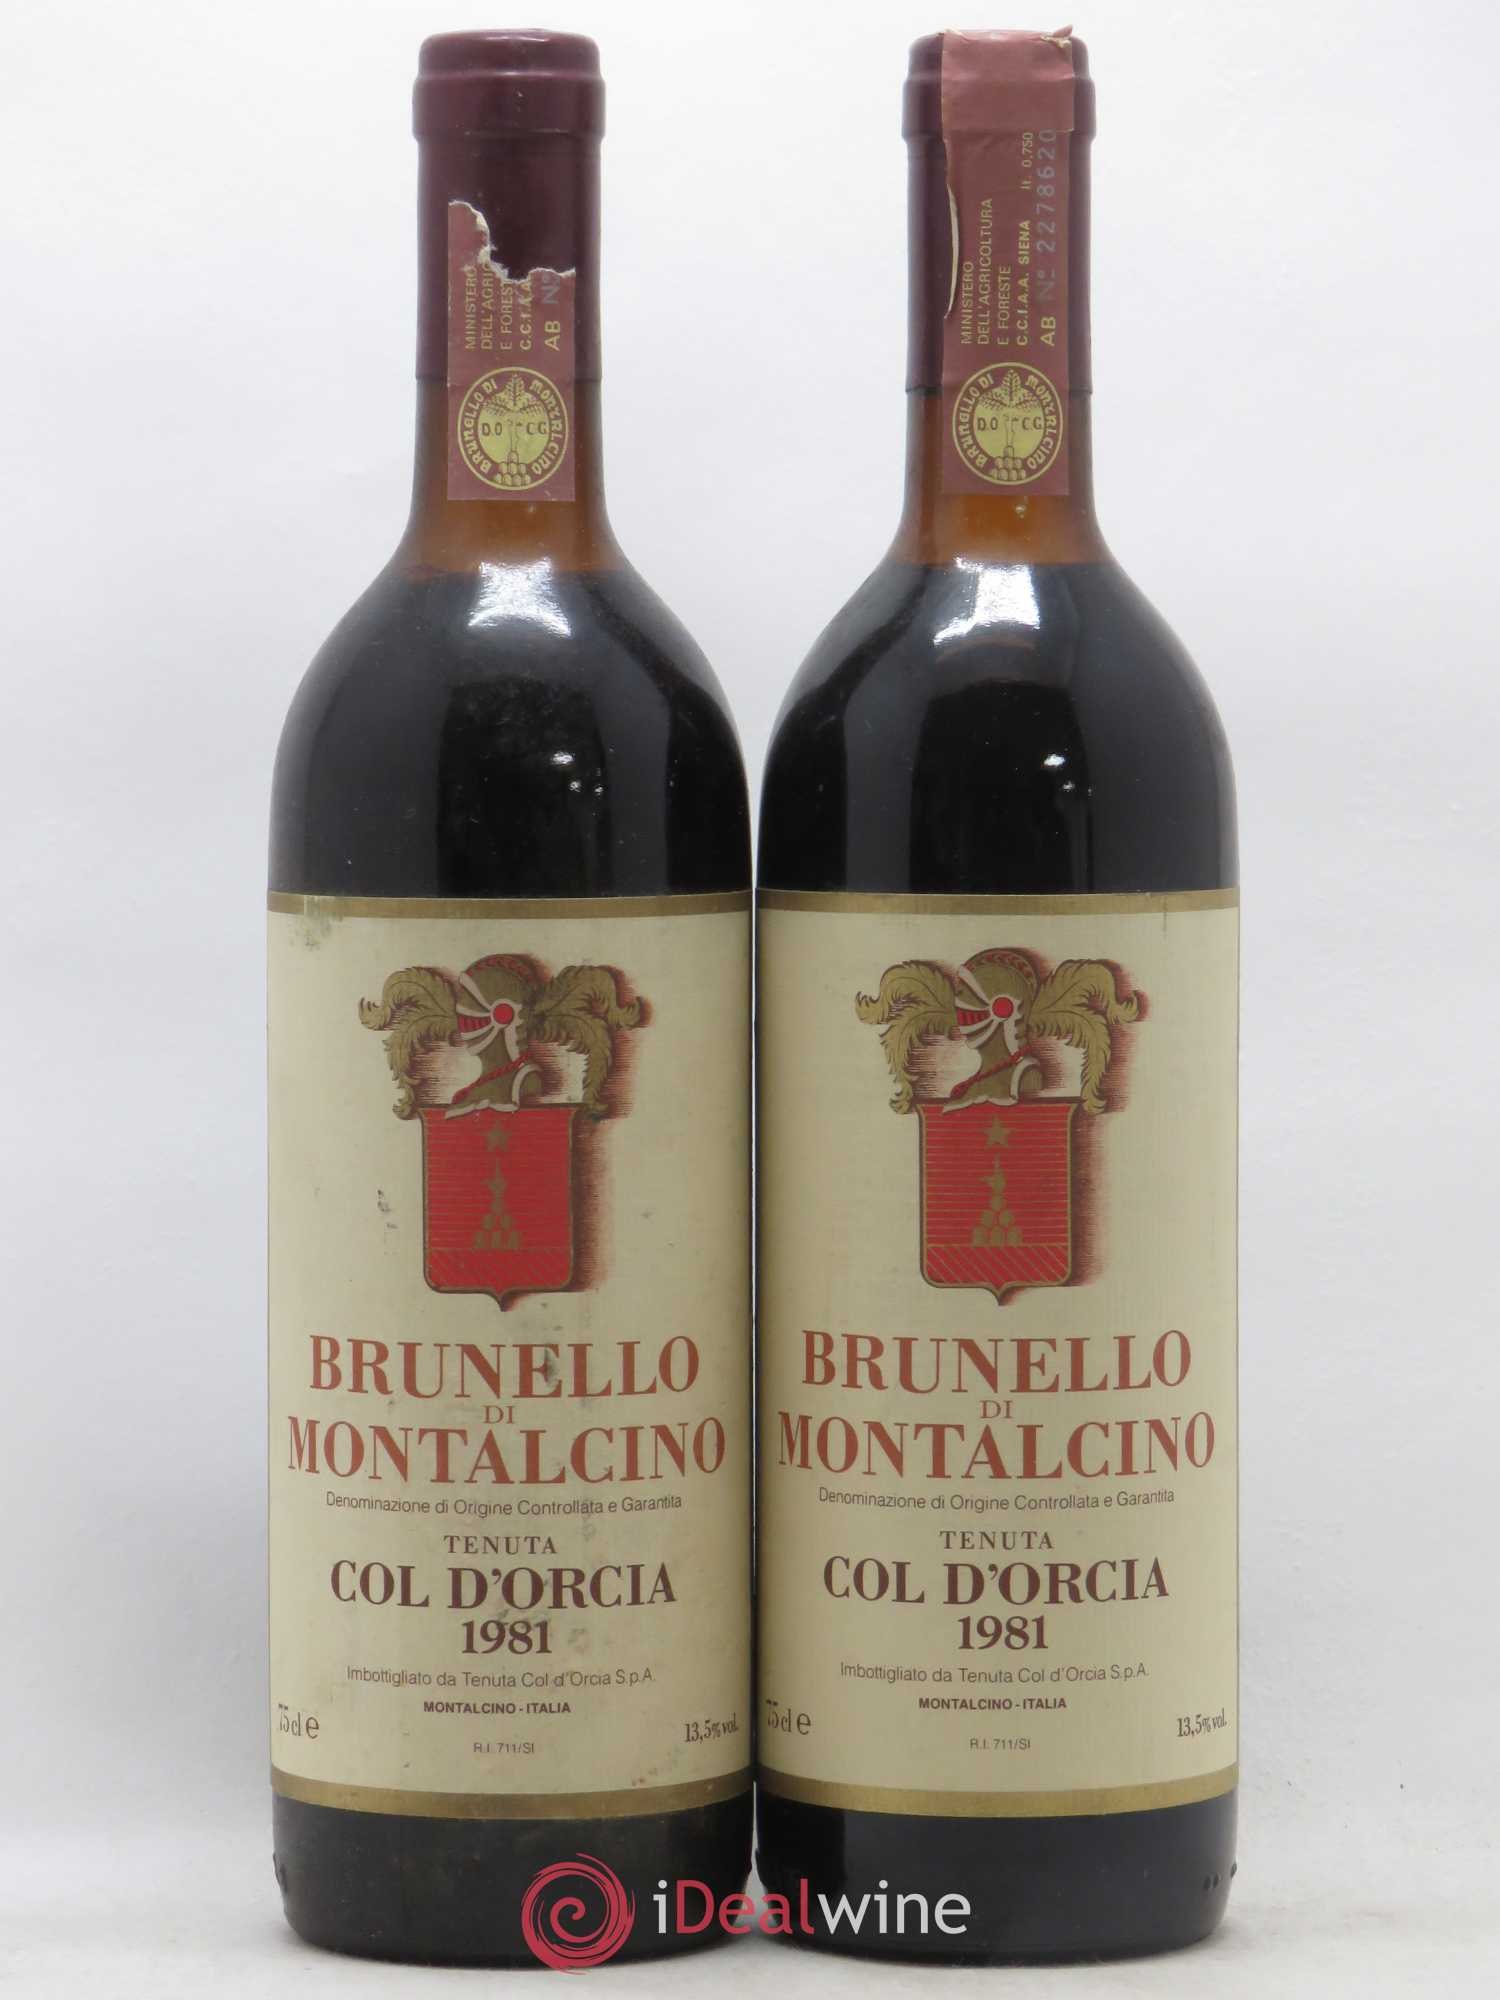 Brunello di Montalcino DOCG Col d'Orcia 1981 - Lot of 2 Bottles